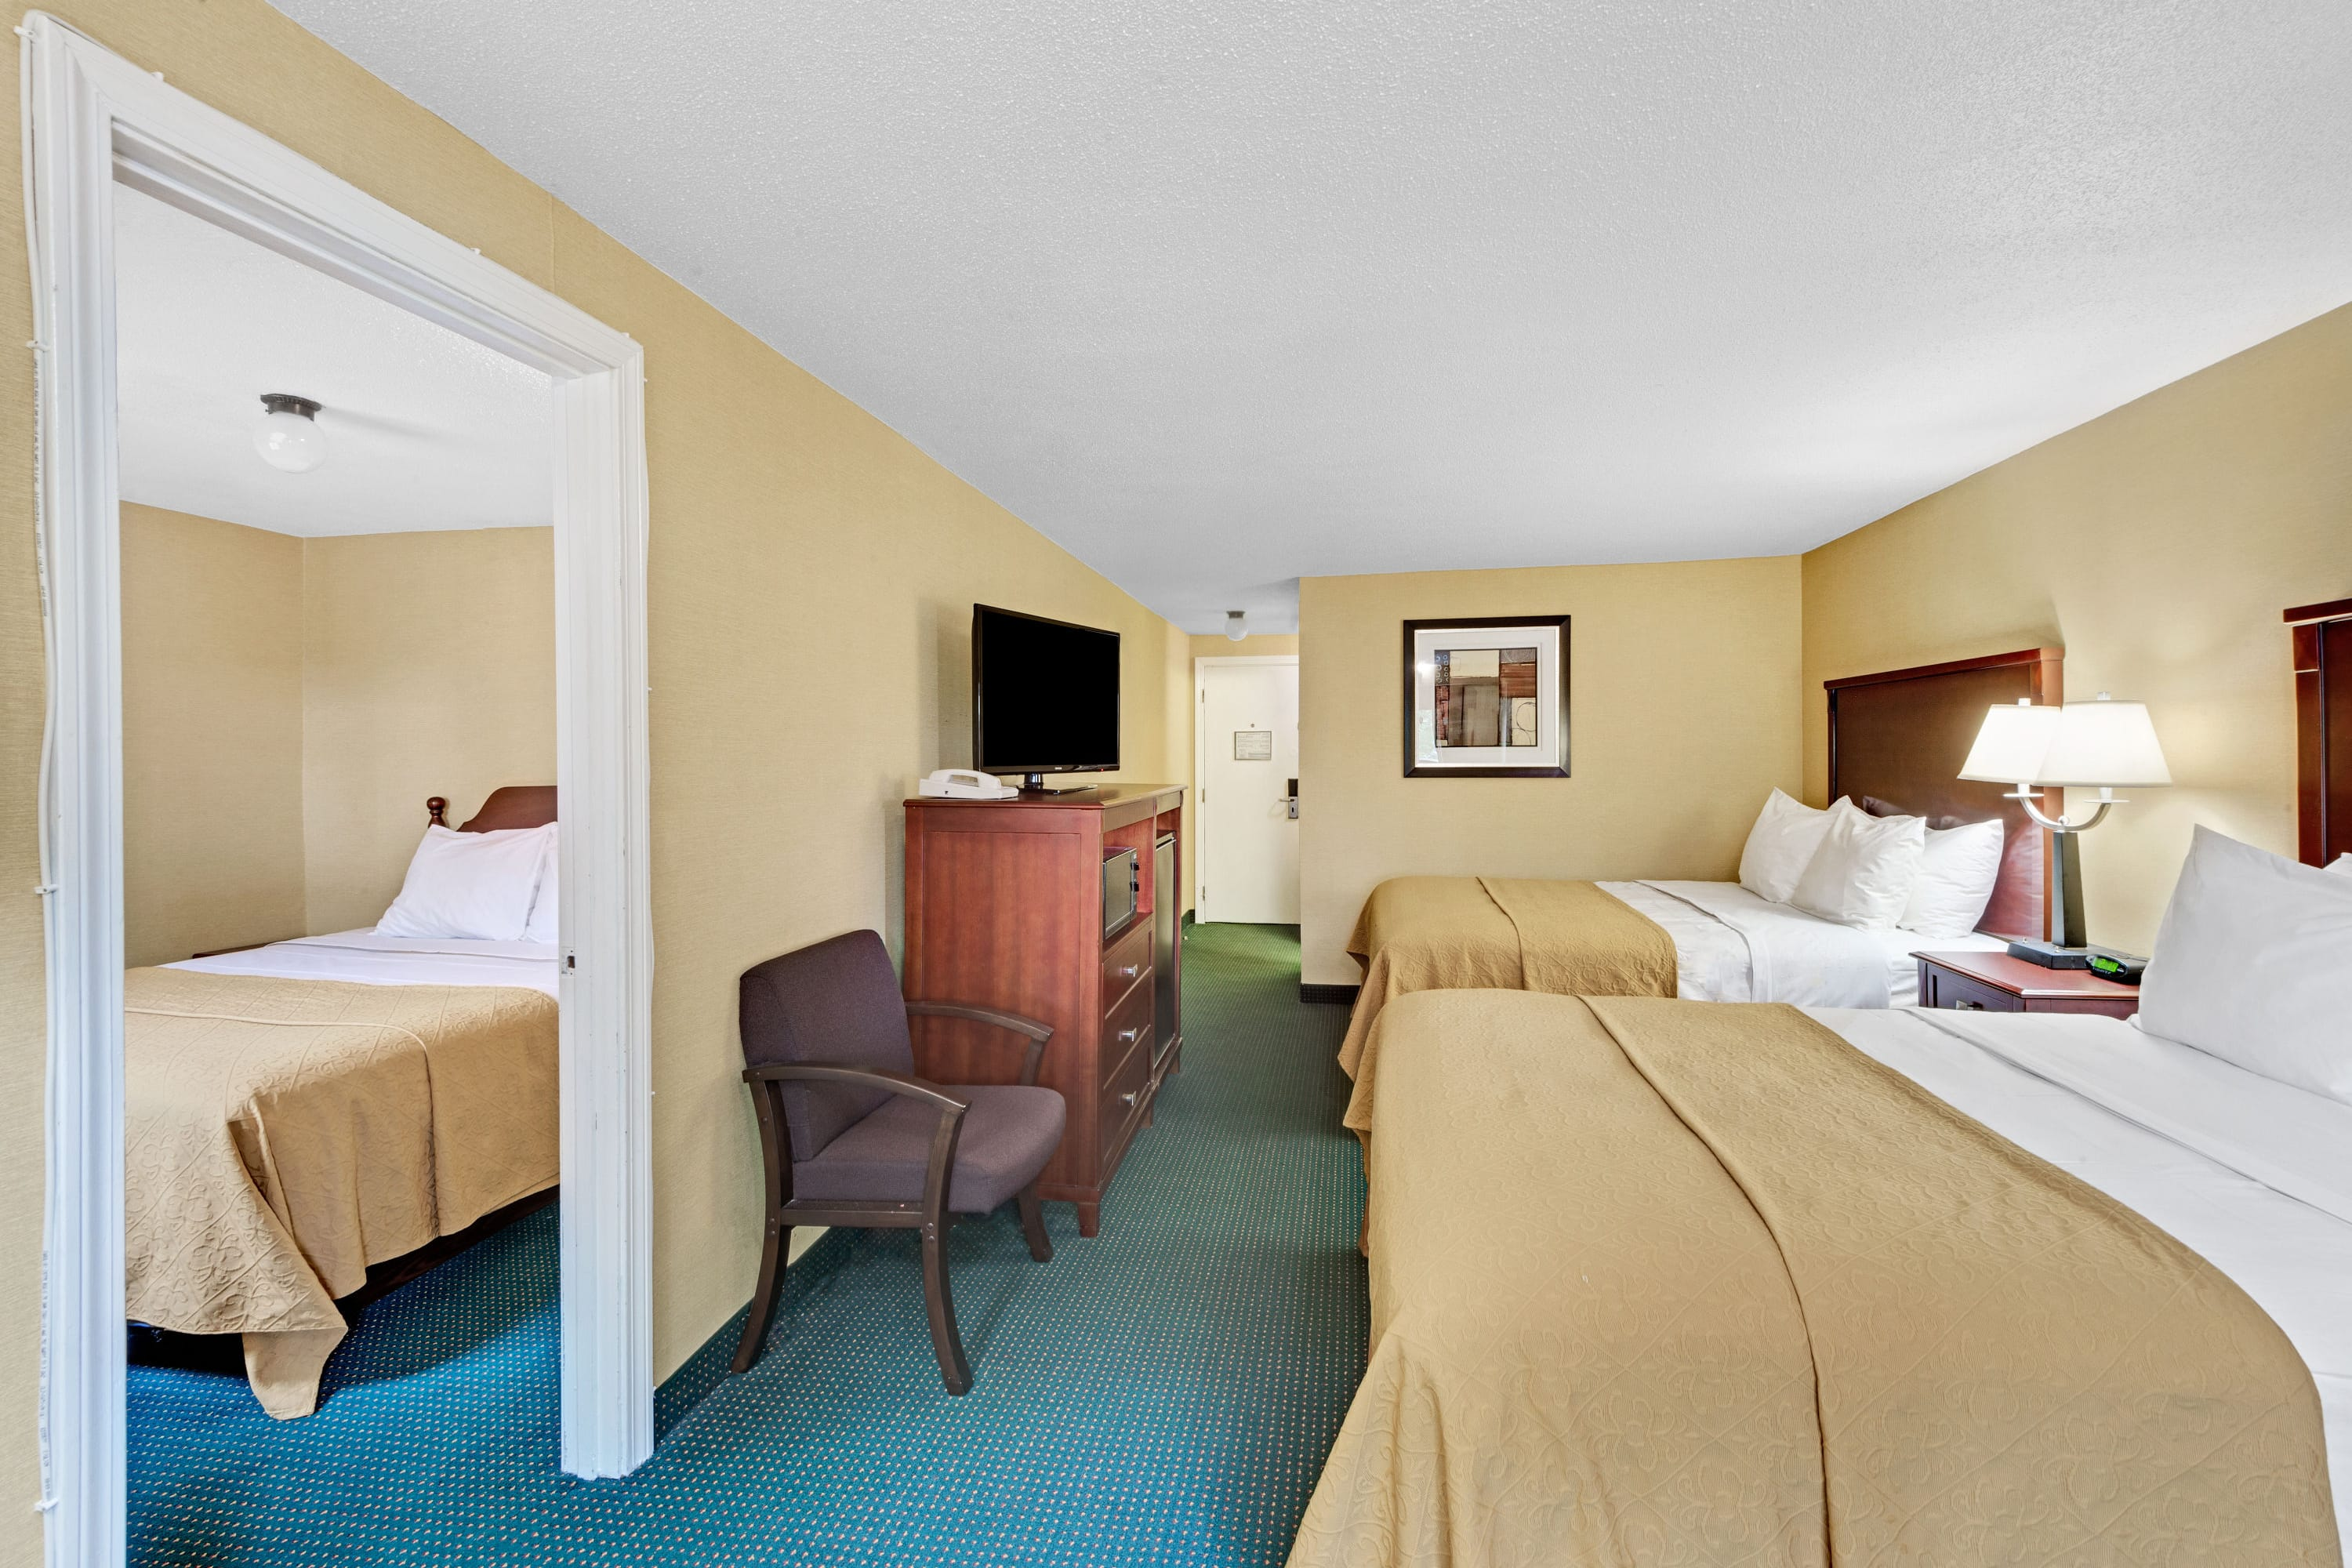 Ramada Kittery suite in Kittery, Maine